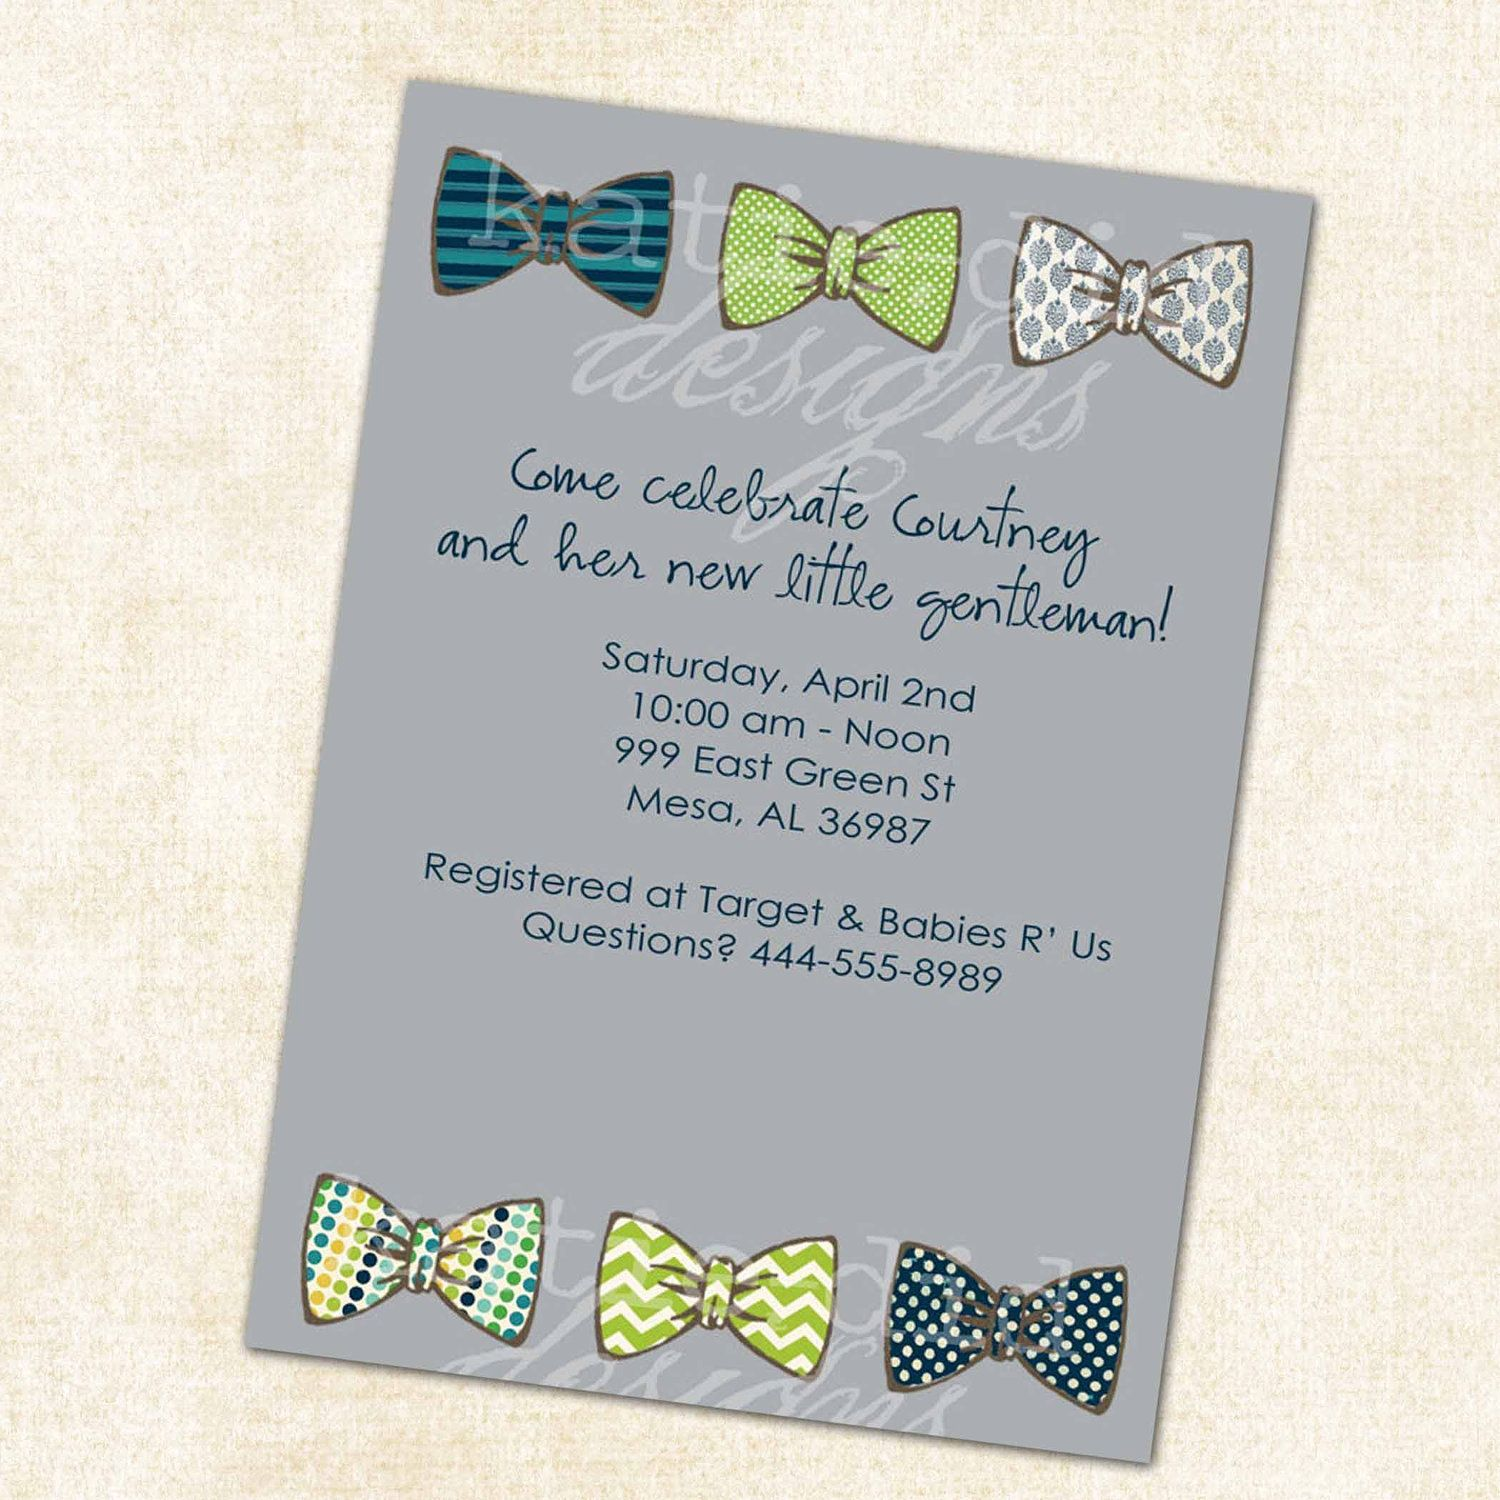 Baby Boy Shower Invitation With Bow Ties, Little Gentleman Theme, Digital,  Printable File